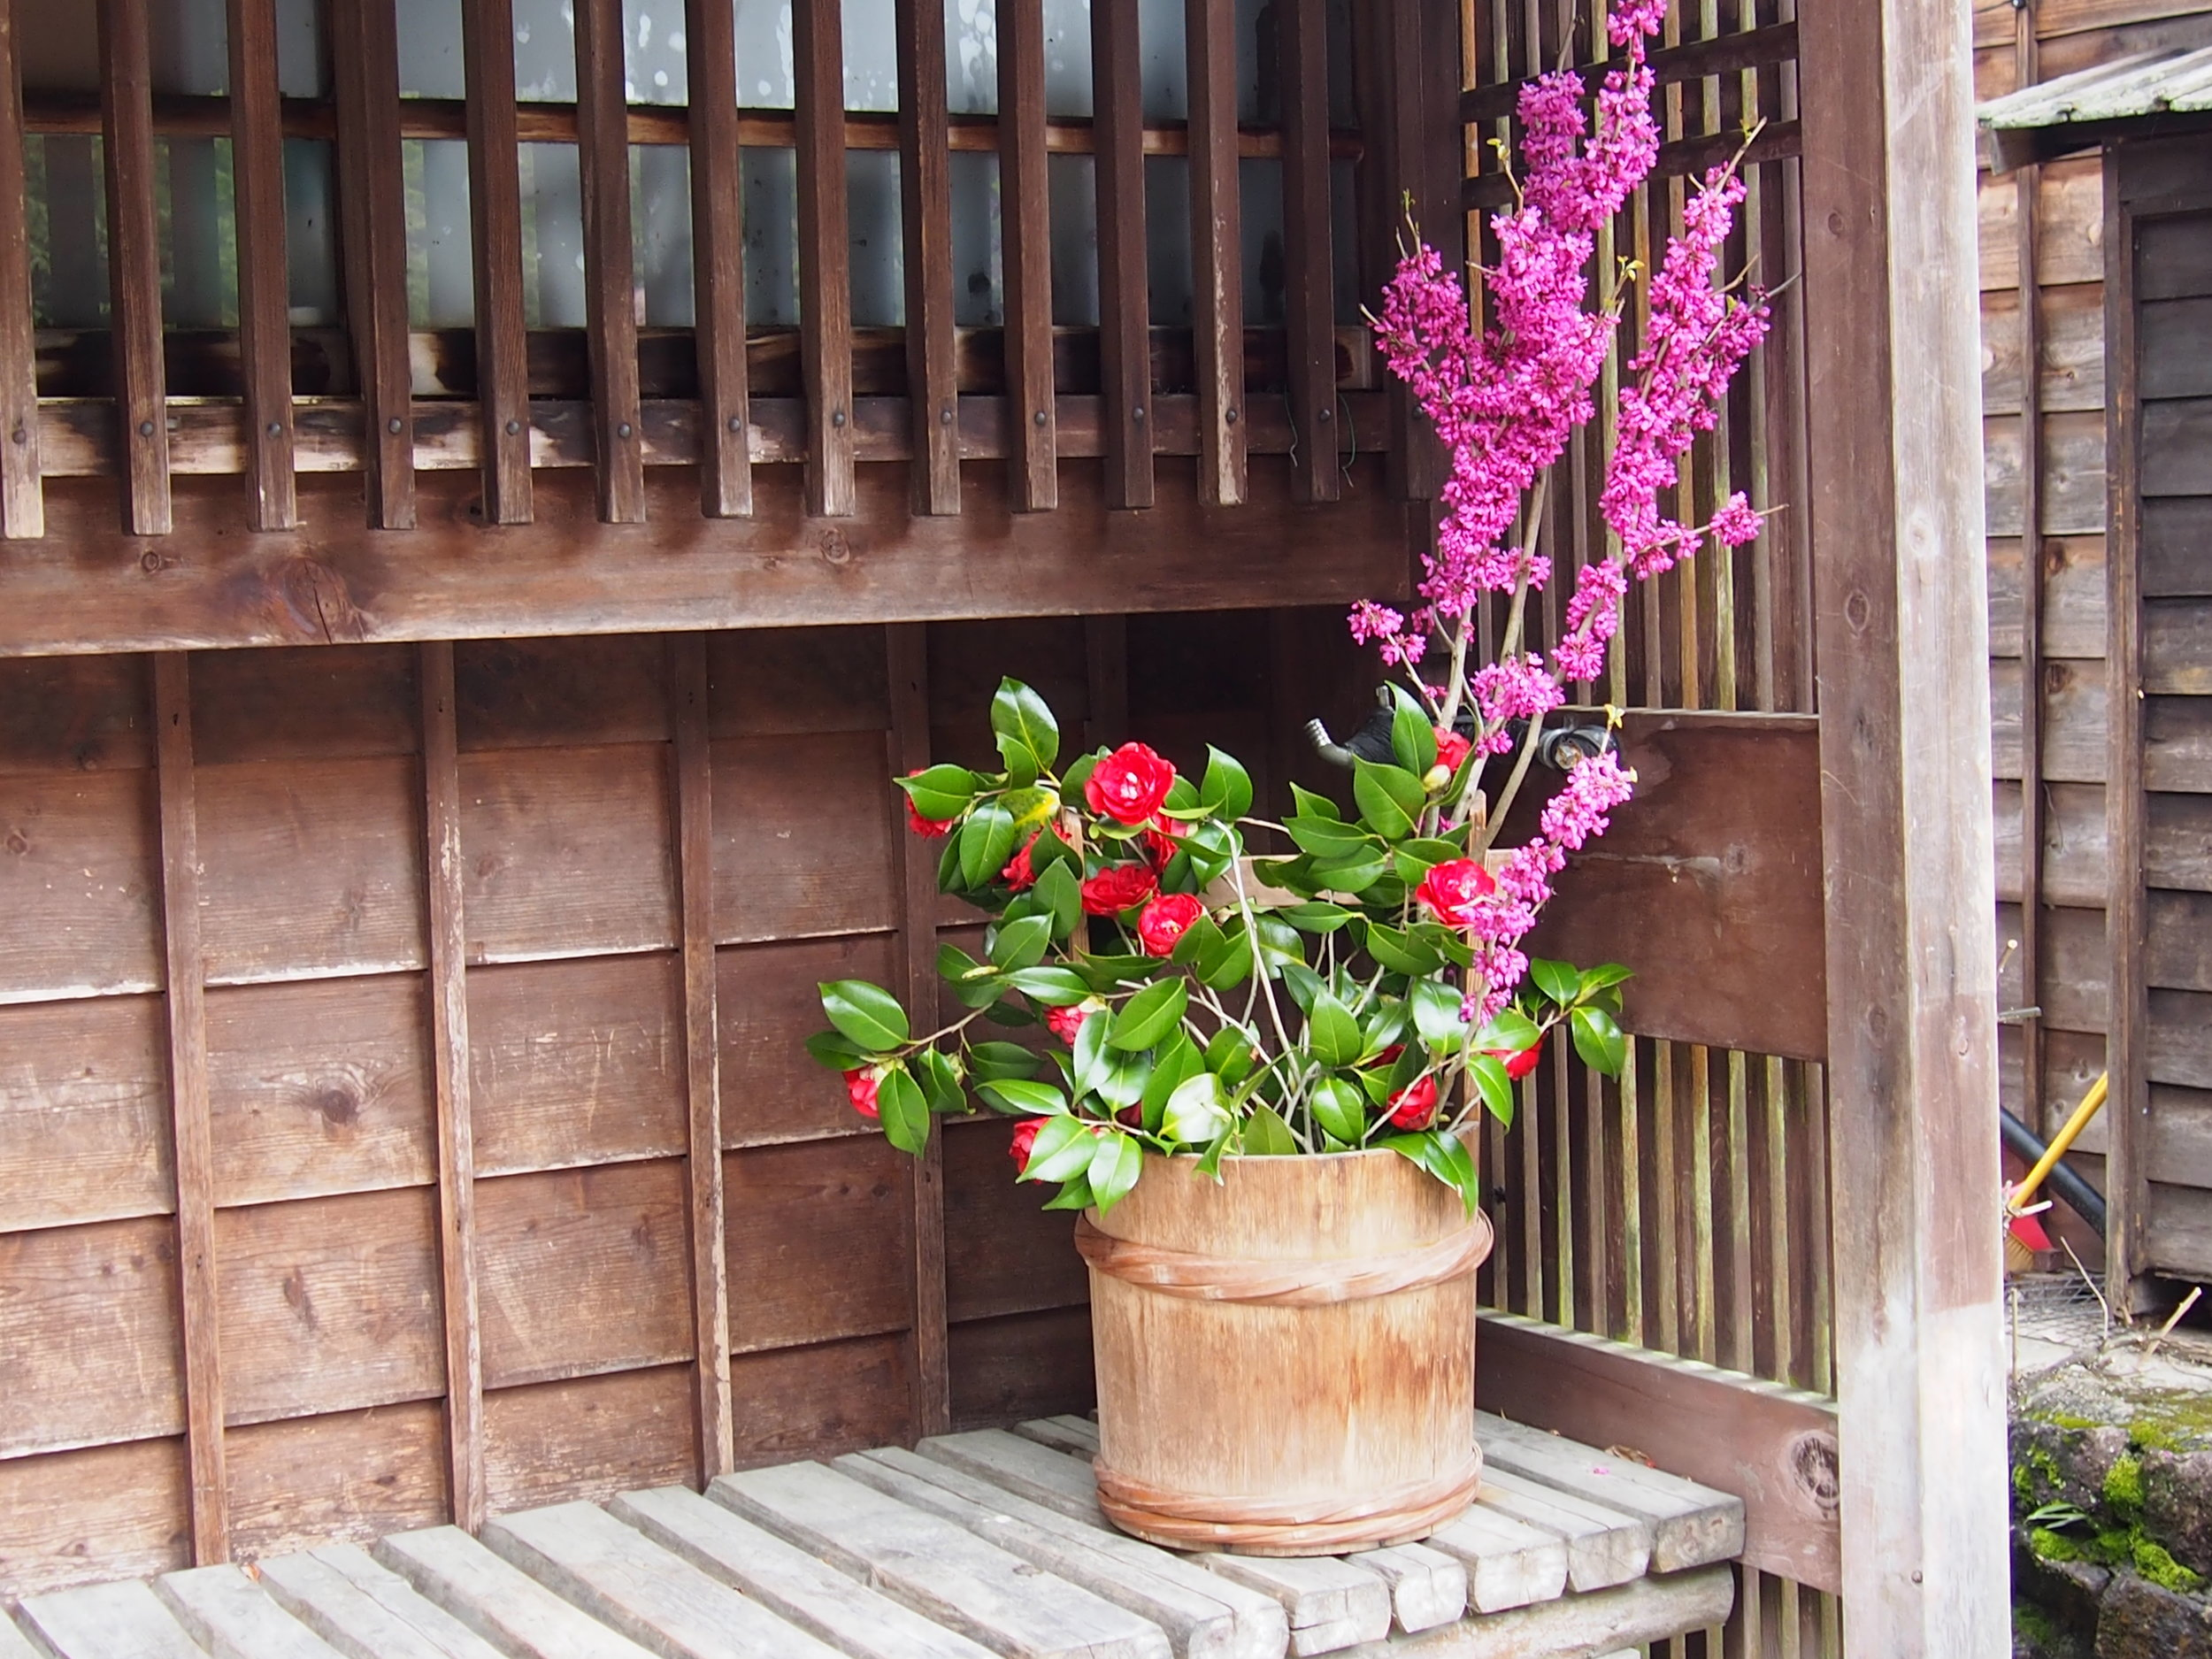 Beautiful natural flowers in Tsumago Juku (Gifu prefecture)